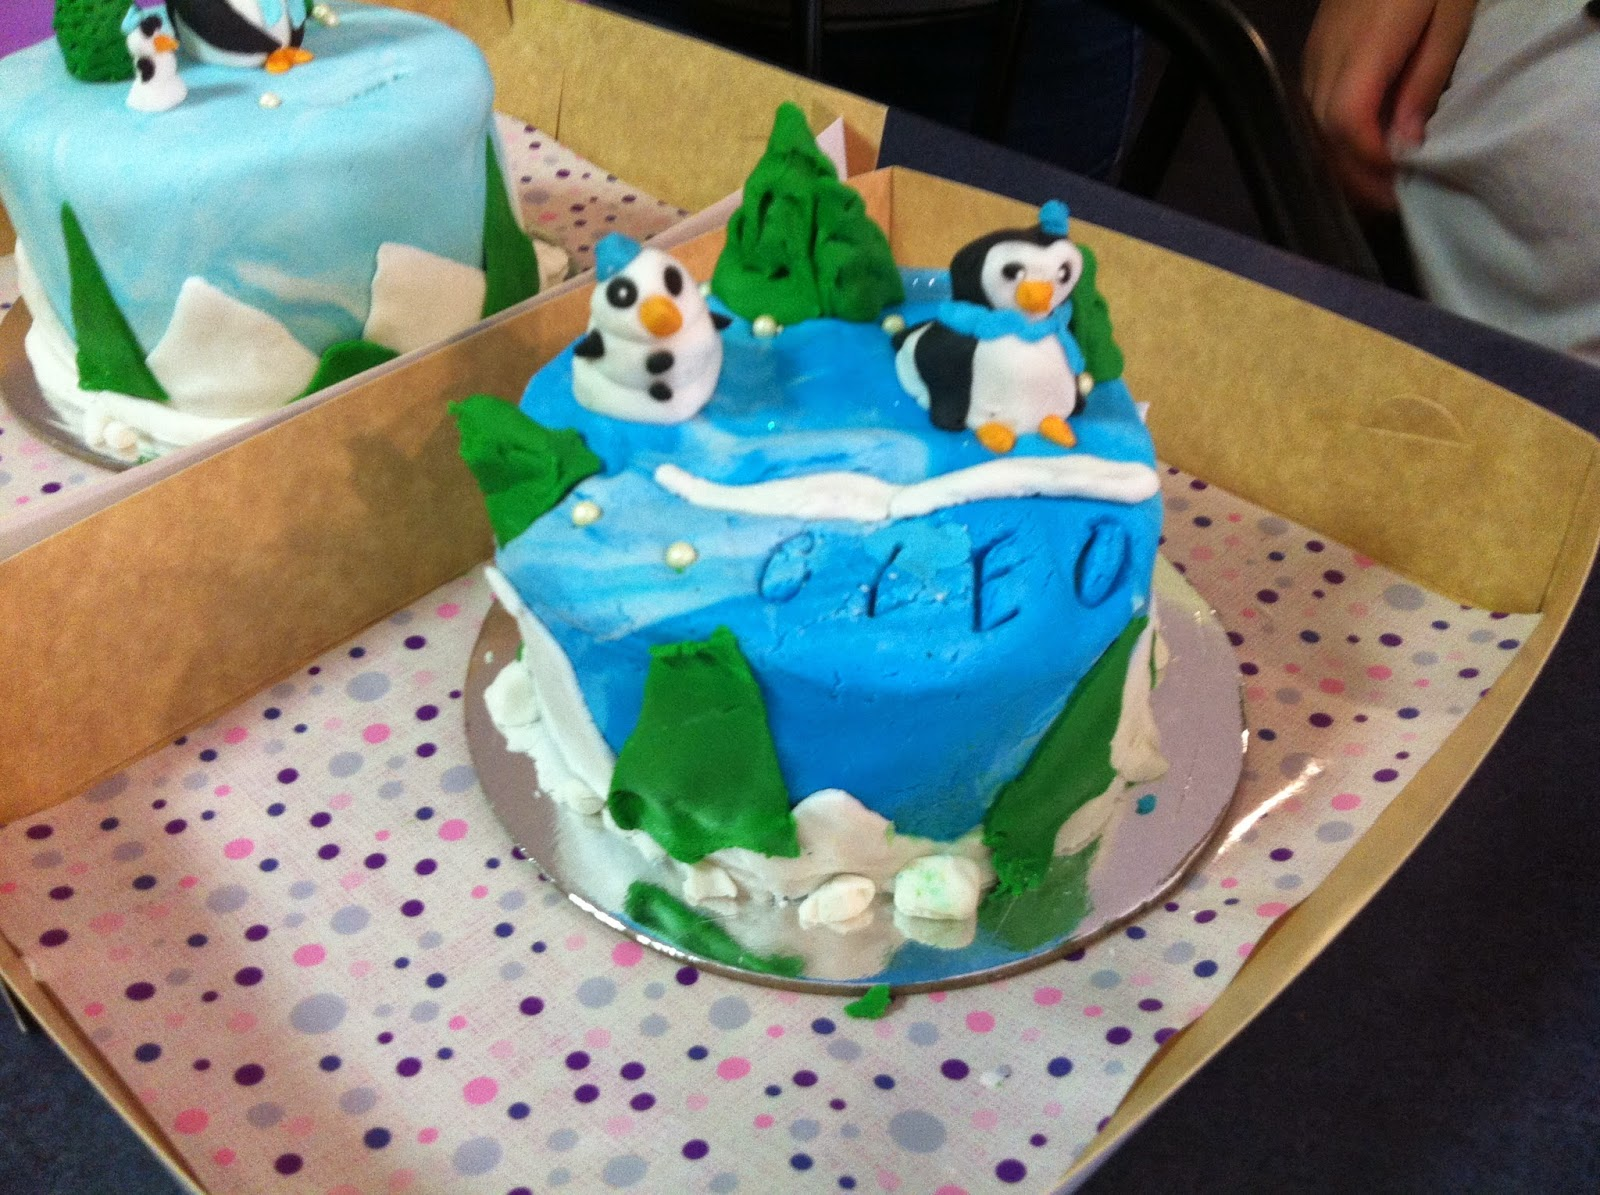 Cake Decorating Classes Georgia : Elegant Cakes and Party Dates: Making Penguin mini cakes ...